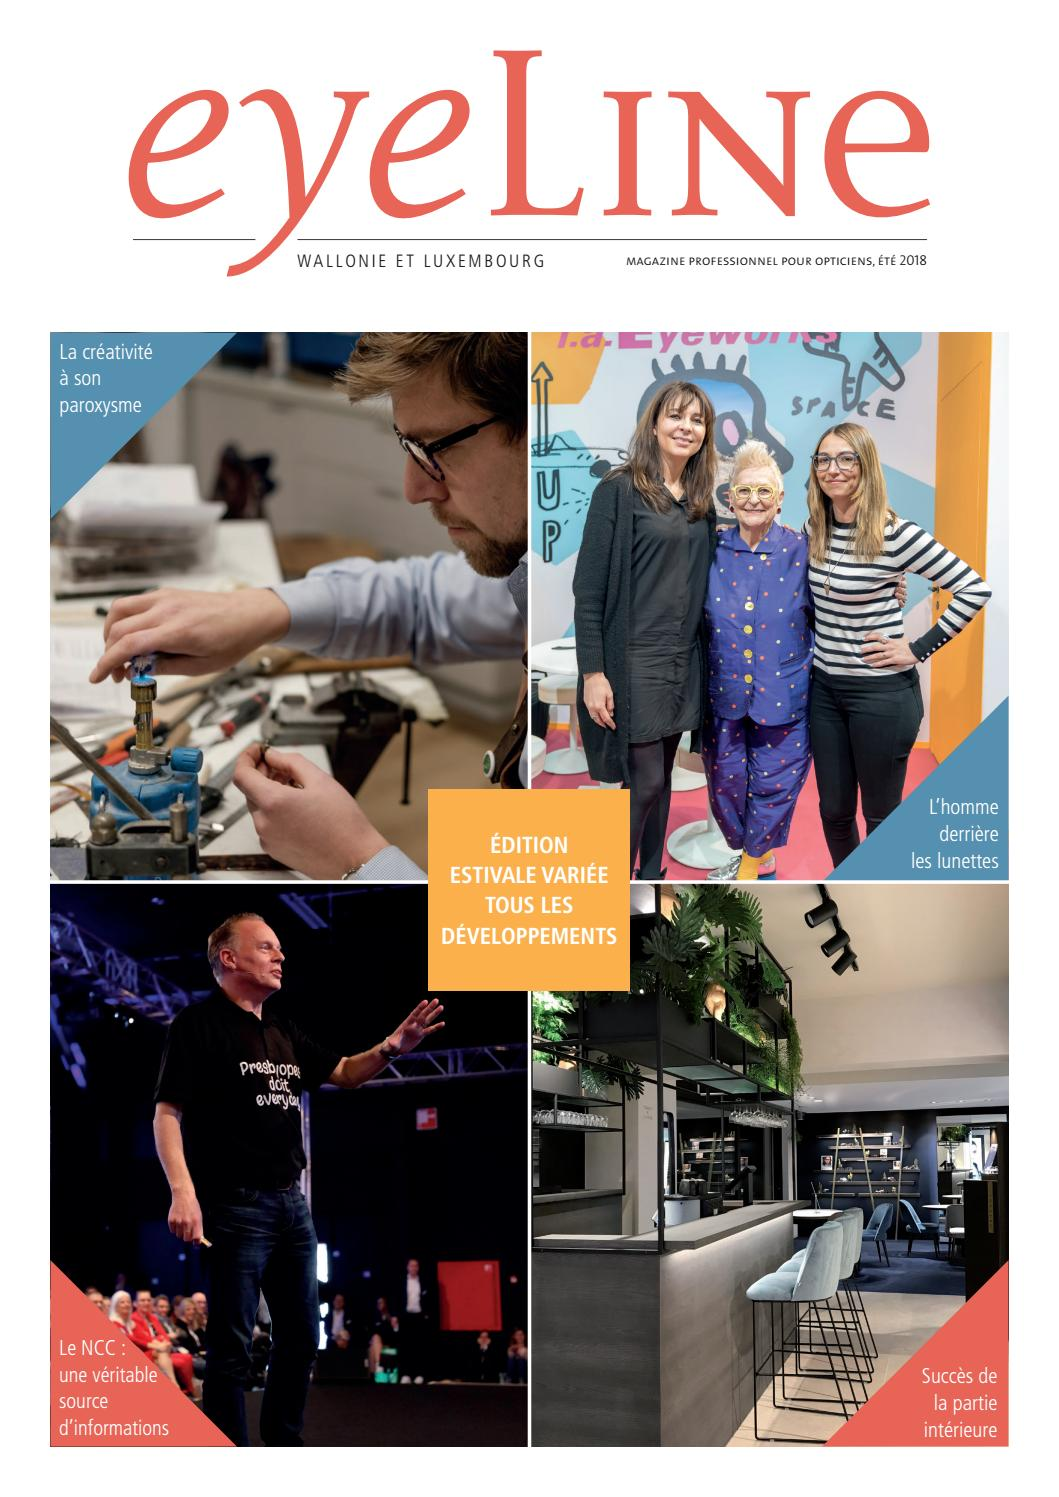 4d85a6fd38335 Eyeline Magazine Wallonie et Luxembourg - 2-2018 by LT Media - issuu